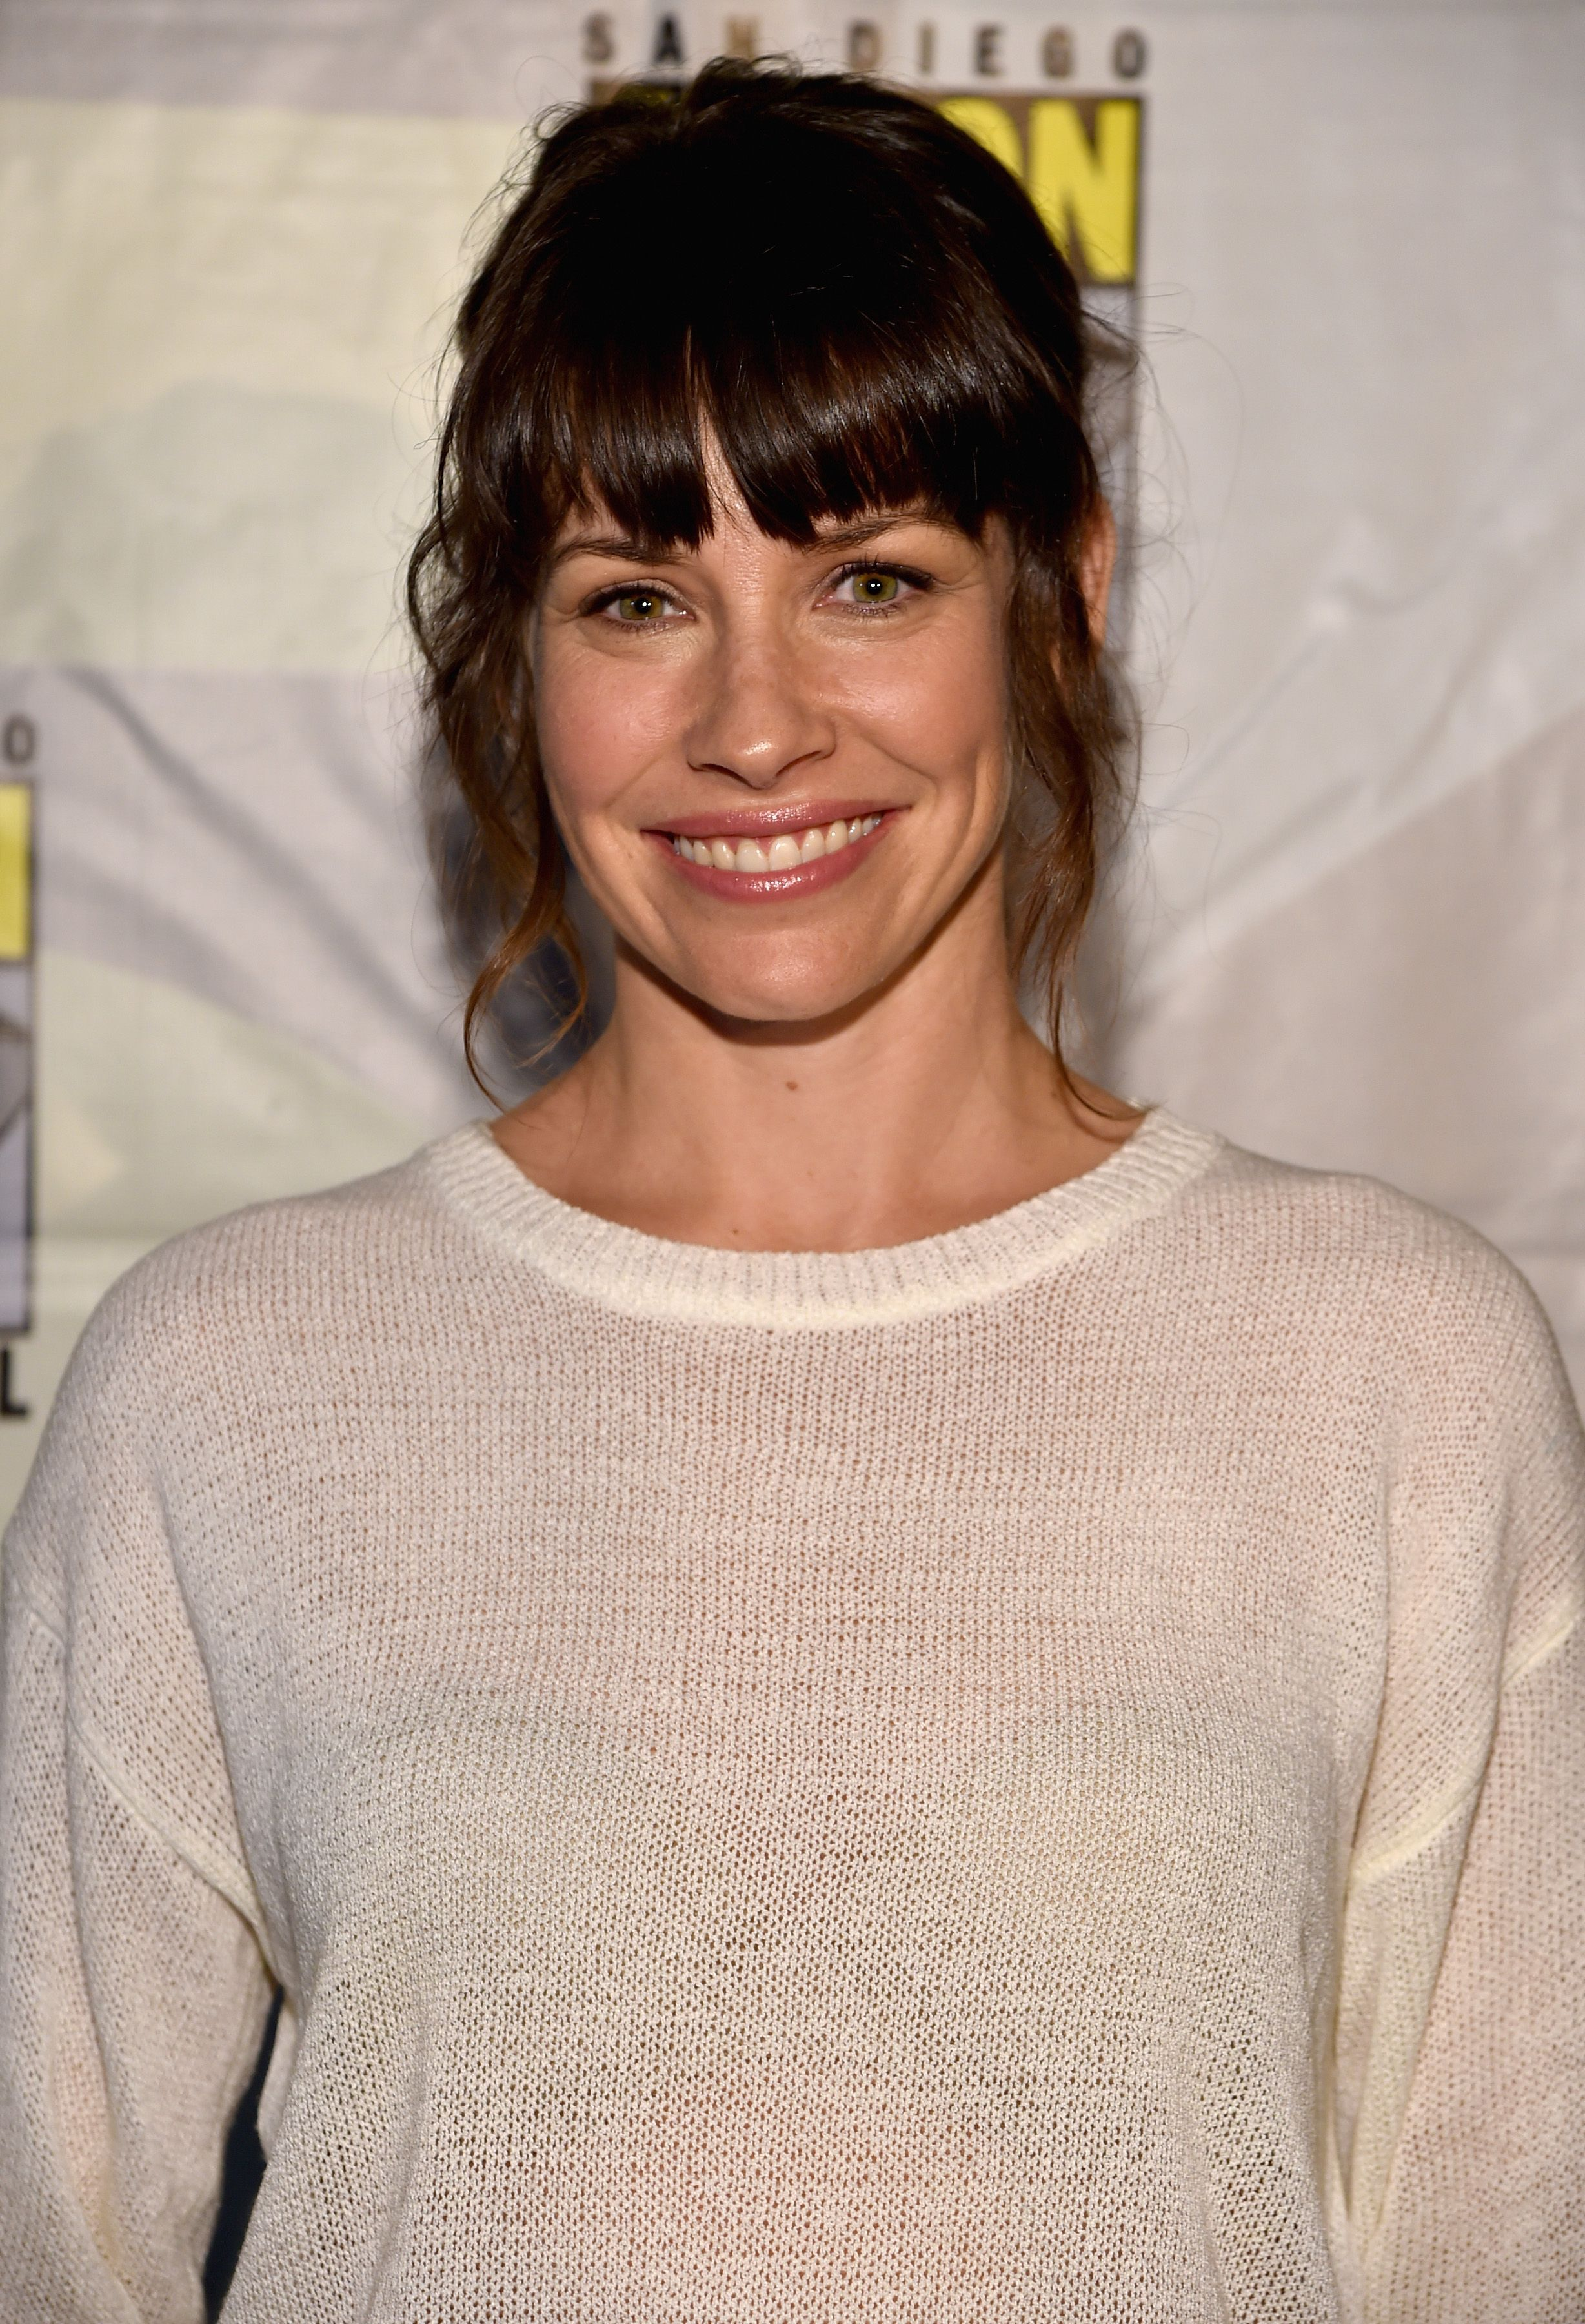 evangeline lilly l'orealevangeline lilly 2016, evangeline lilly 2017, evangeline lilly lost, evangeline lilly gif, evangeline lilly photoshoots, evangeline lilly tumblr, evangeline lilly husband, evangeline lilly insta, evangeline lilly young, evangeline lilly net worth, evangeline lilly kate beckinsale, evangeline lilly 2014, evangeline lilly hq, evangeline lilly book, evangeline lilly magazine, evangeline lilly gallery, evangeline lilly kinopoisk, evangeline lilly lee pace, evangeline lilly official, evangeline lilly l'oreal